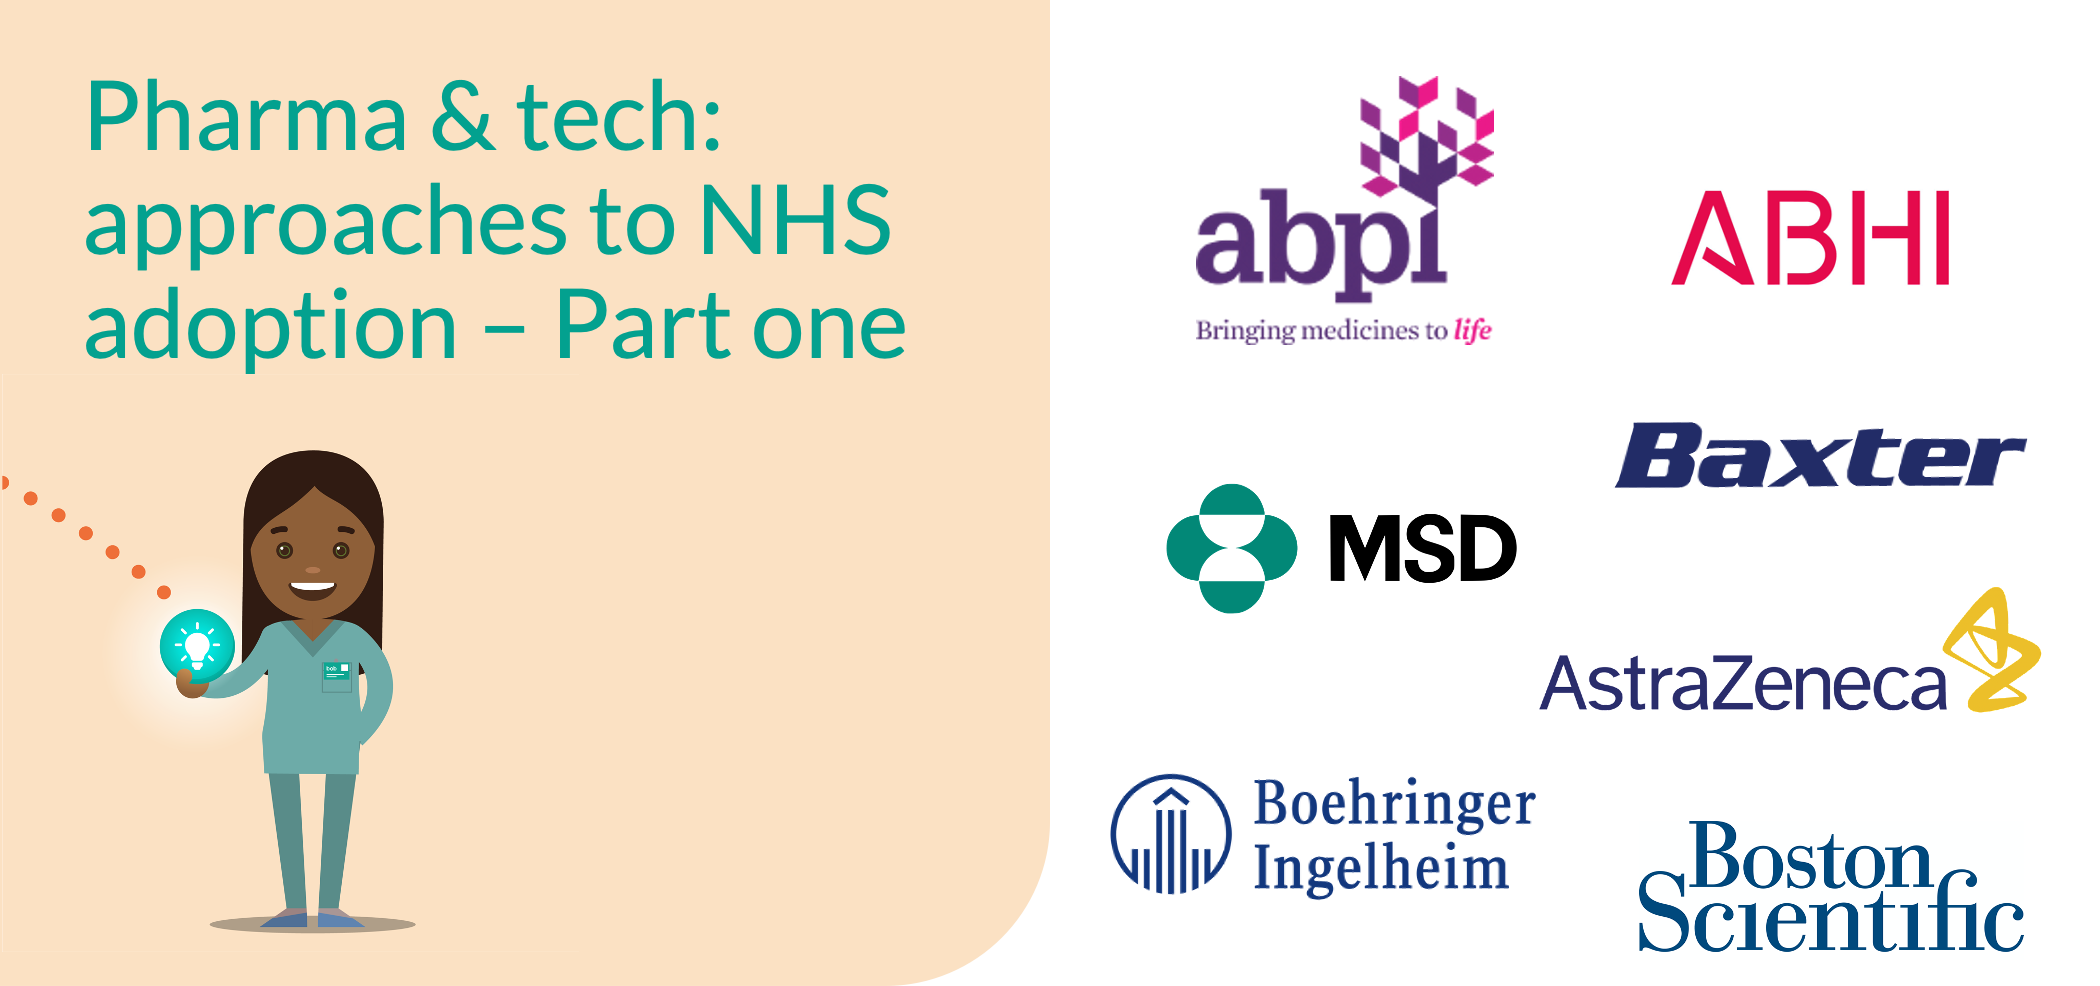 Pharma and Tech: Approaches to NHS adoption - Part one